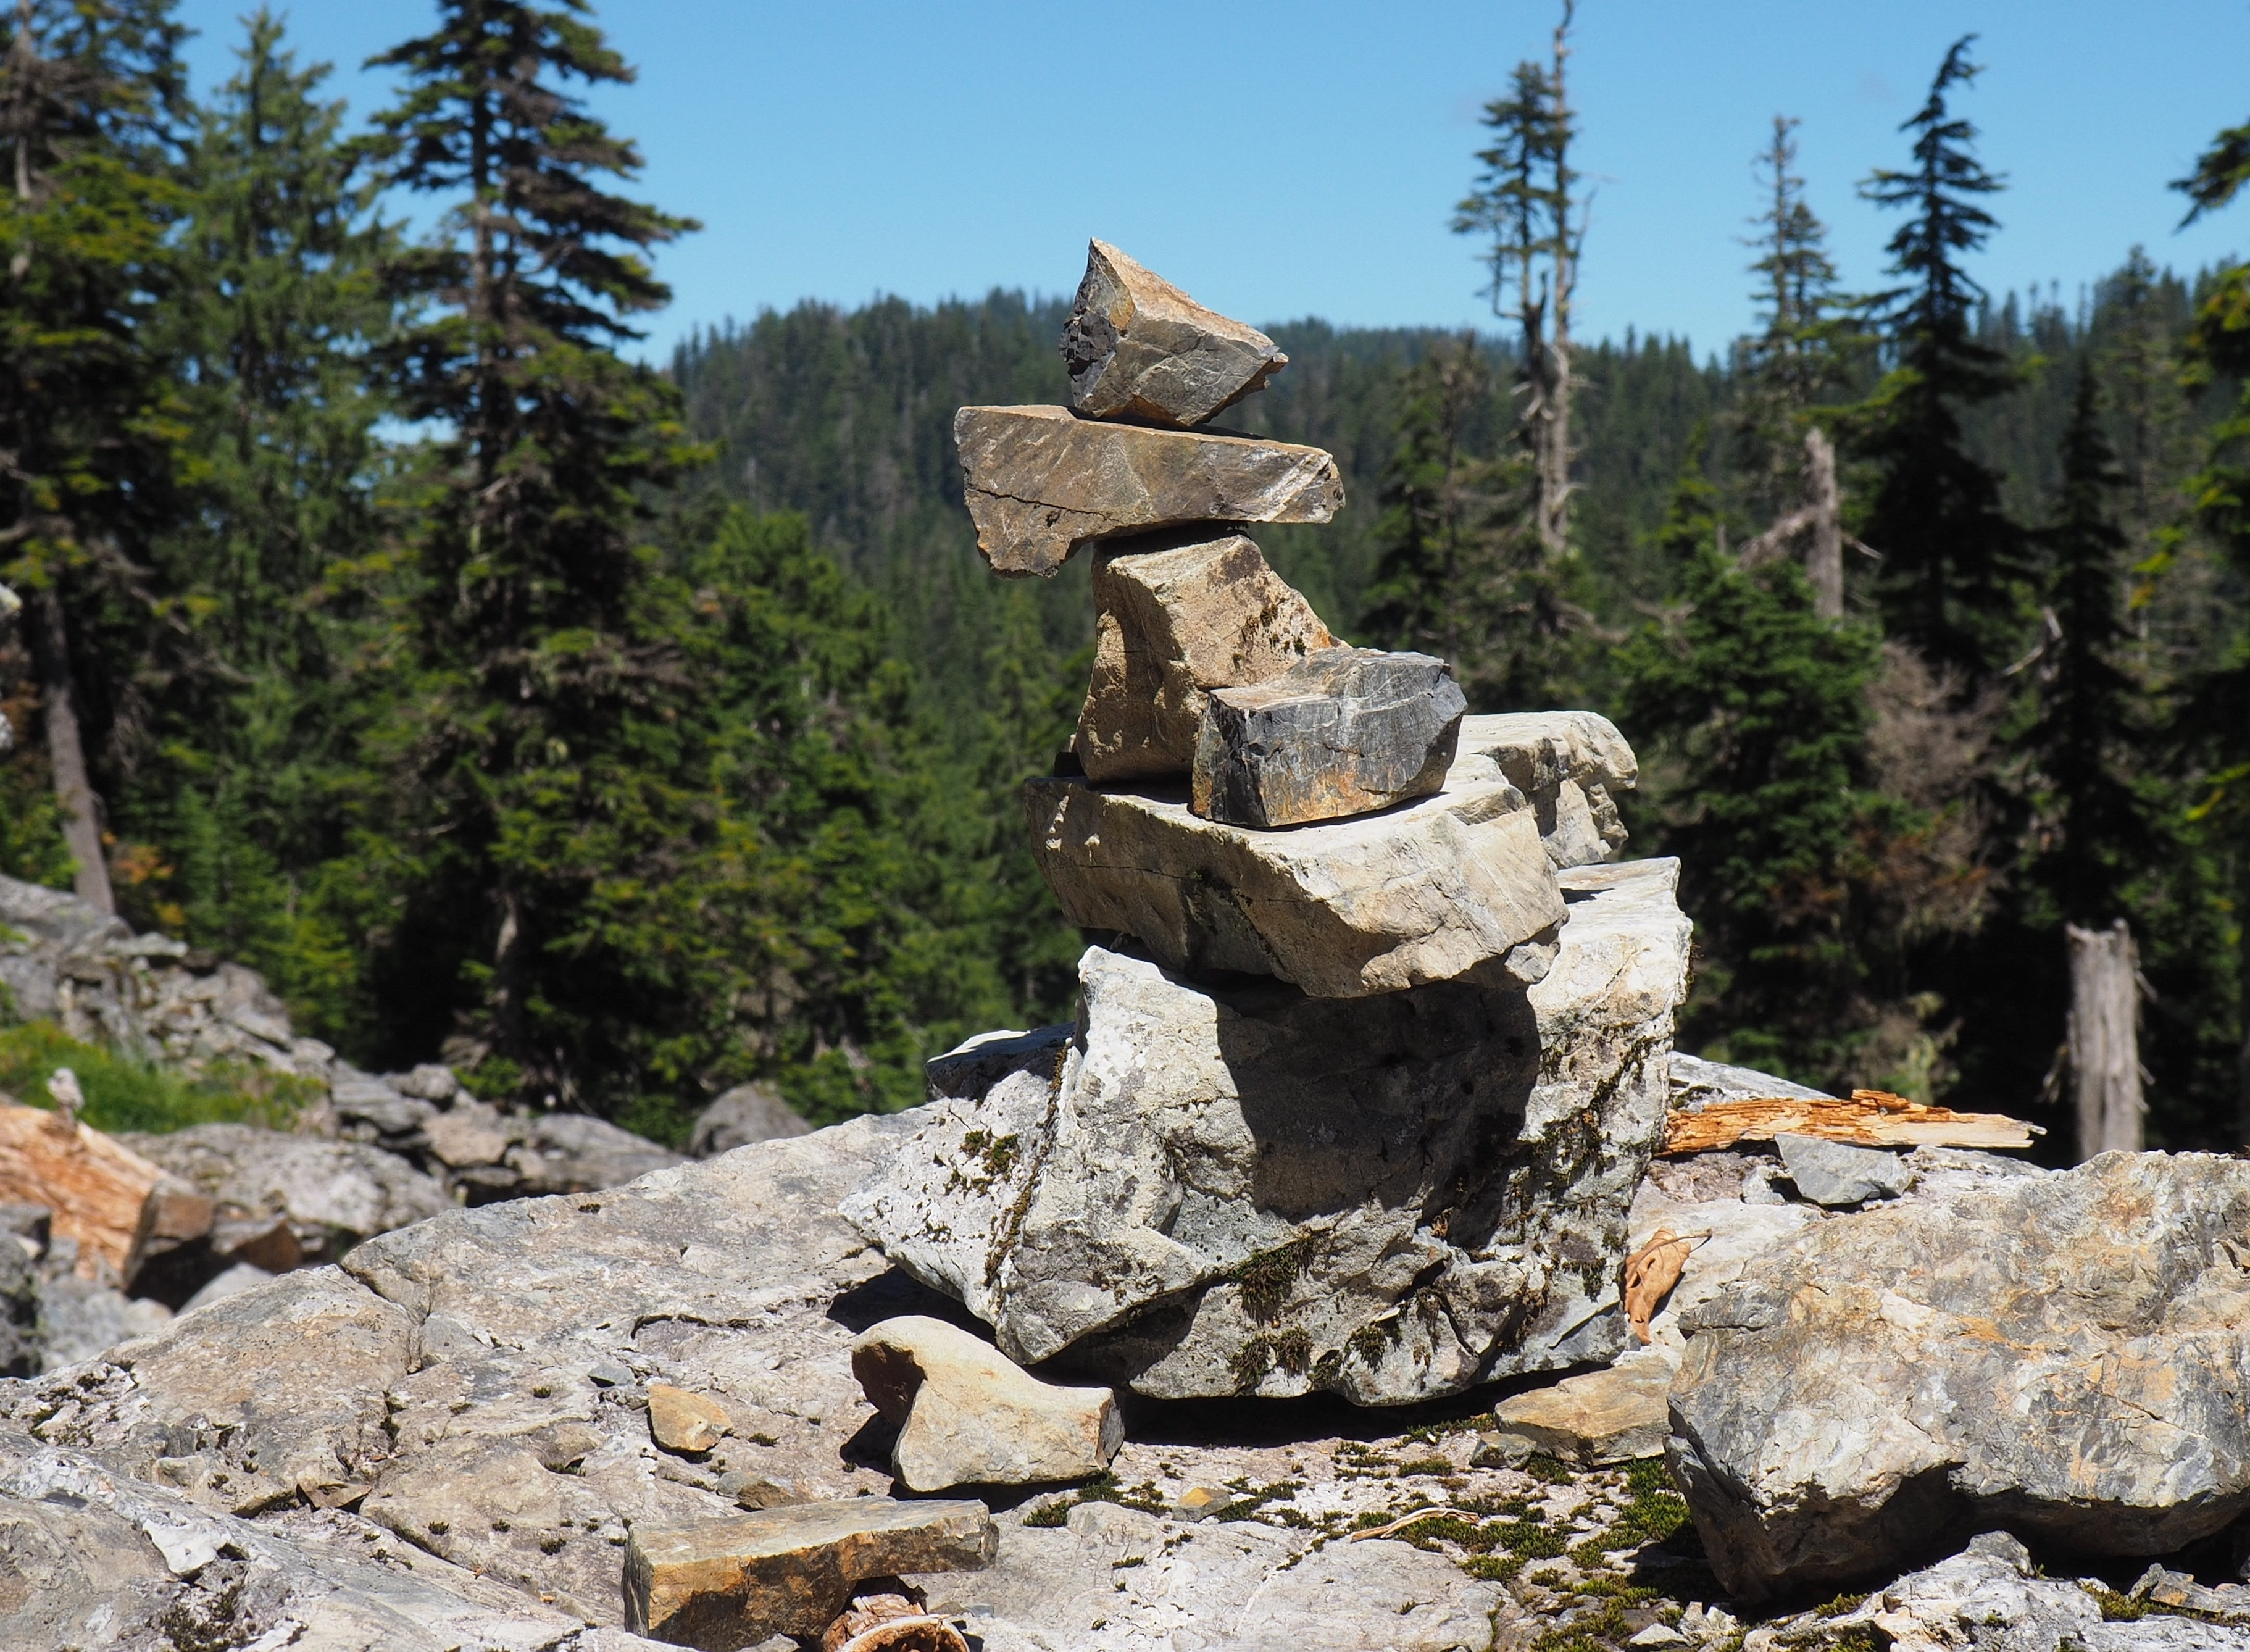 Just beyond the midsection meadow, the trail encounters two large boulderfields where the path is easily lost among the stones. Look for small cairns built by earlier hikers to guide the way. Walt Bailey Trail, July 24, 2016.